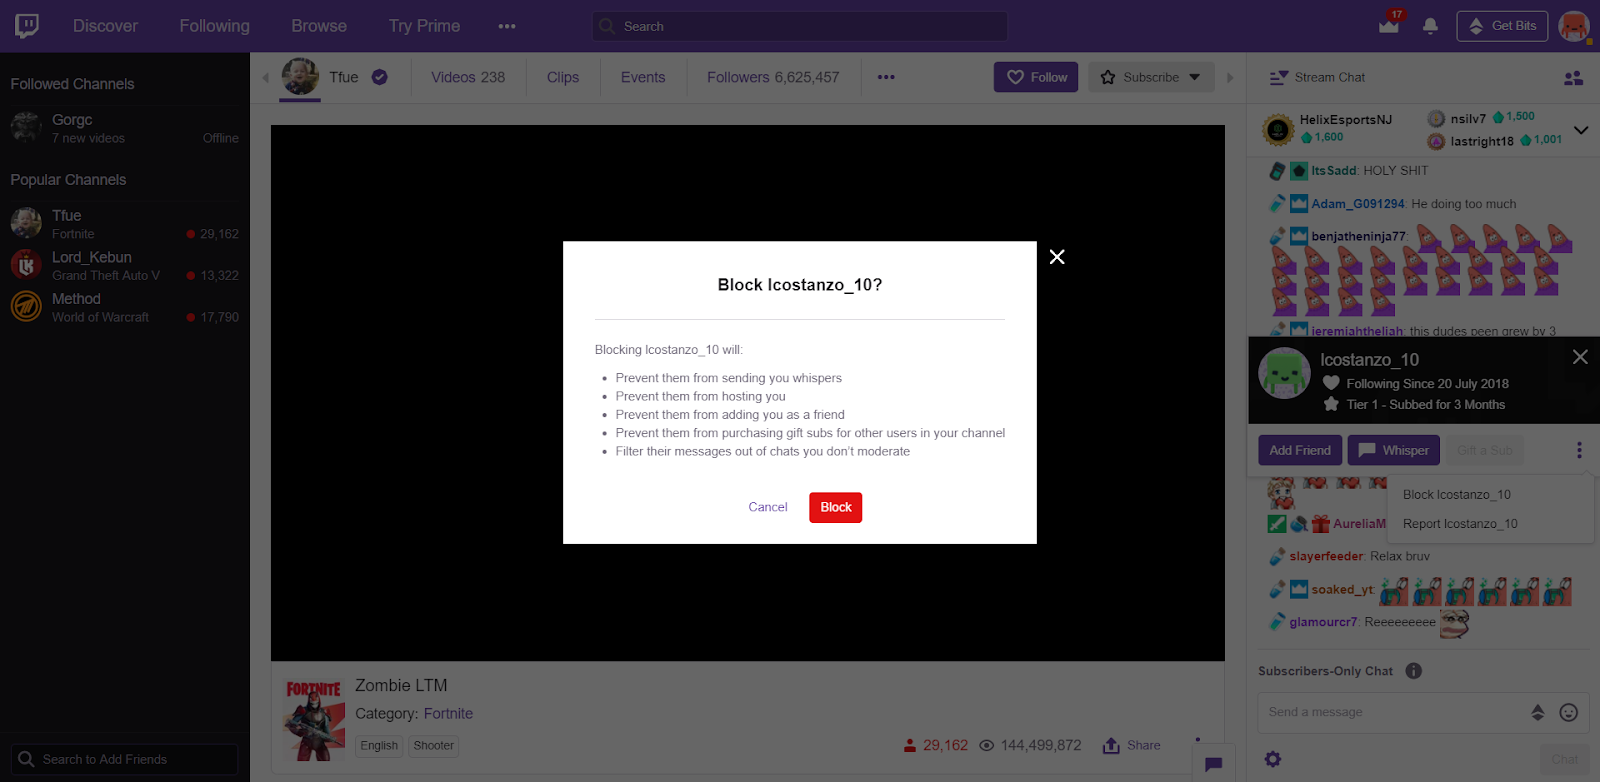 how to block someone on twitch